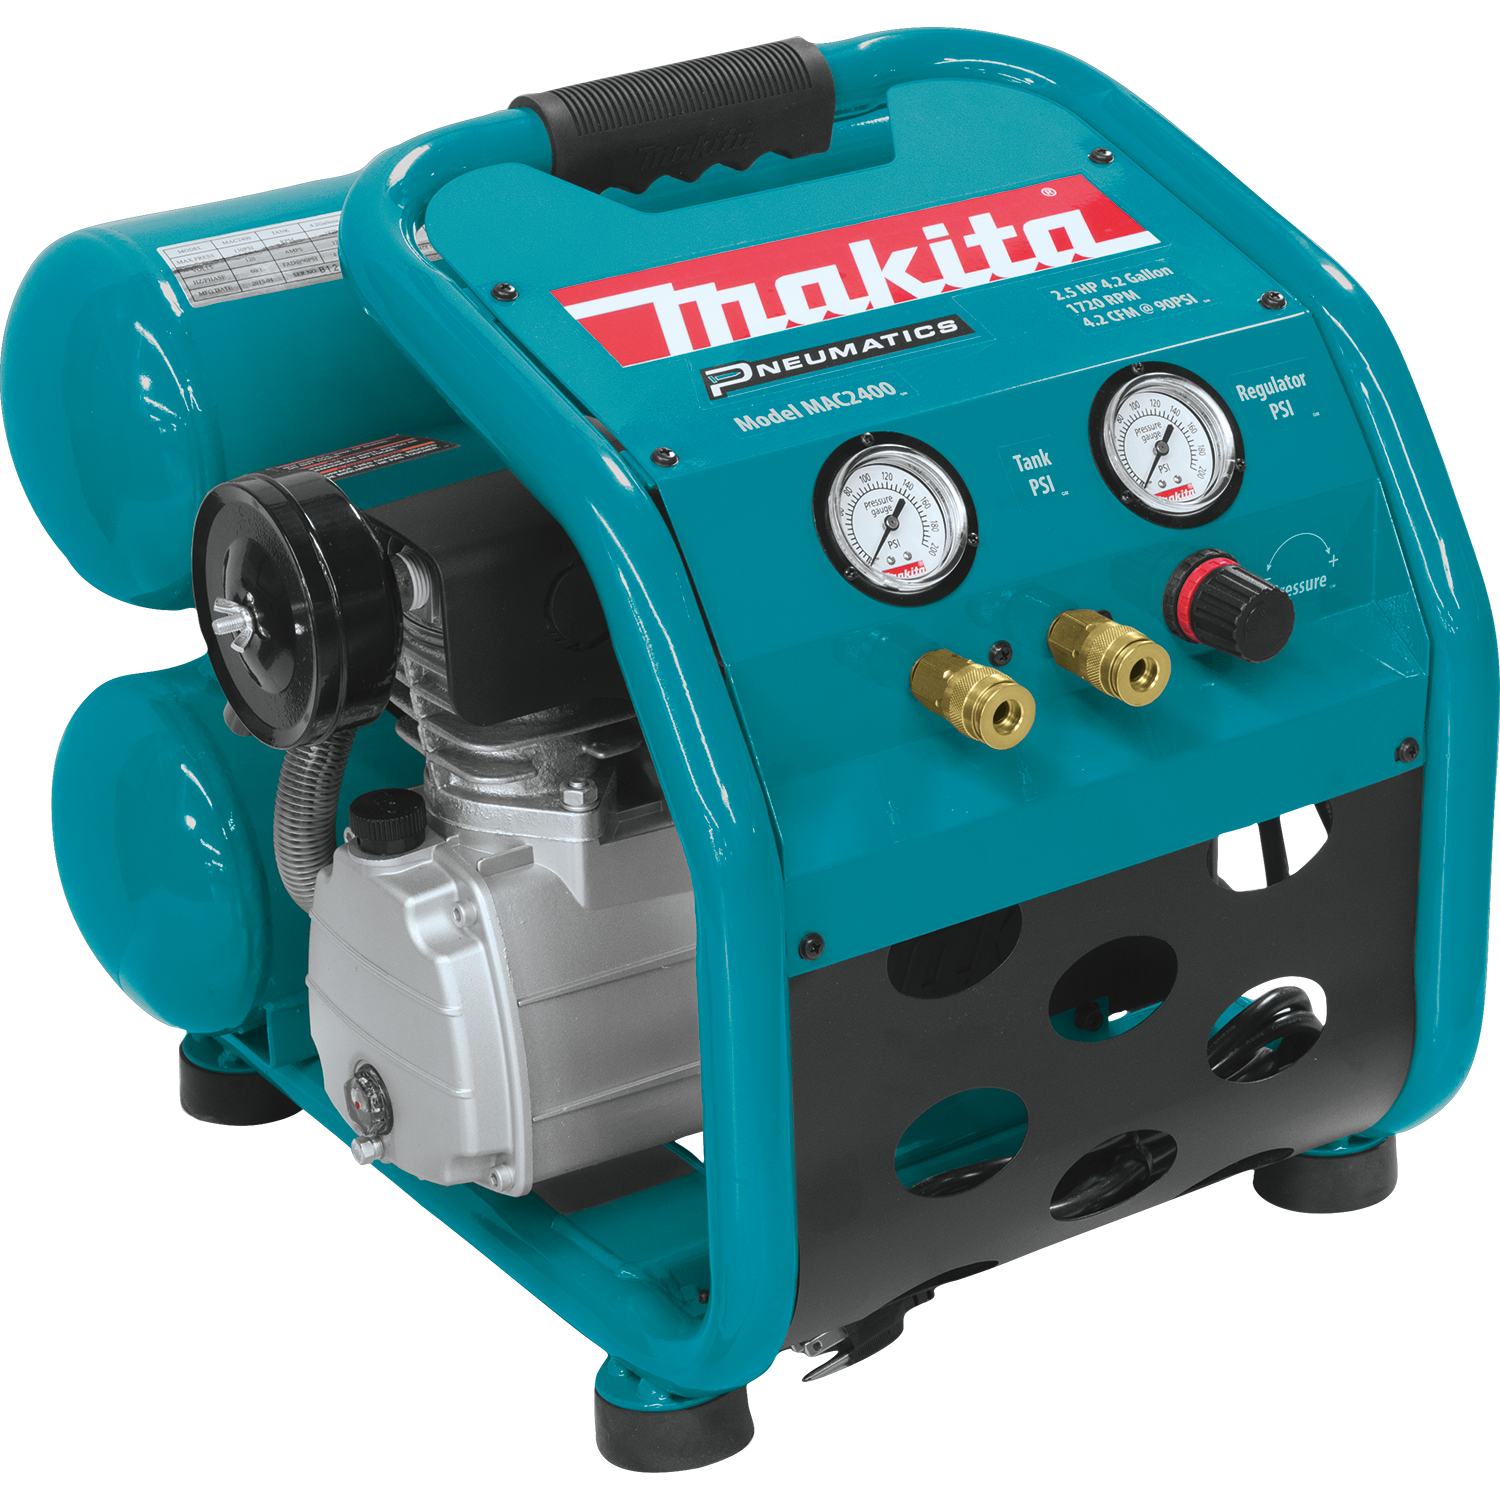 Makita USA - Product Details -MAC2400 on